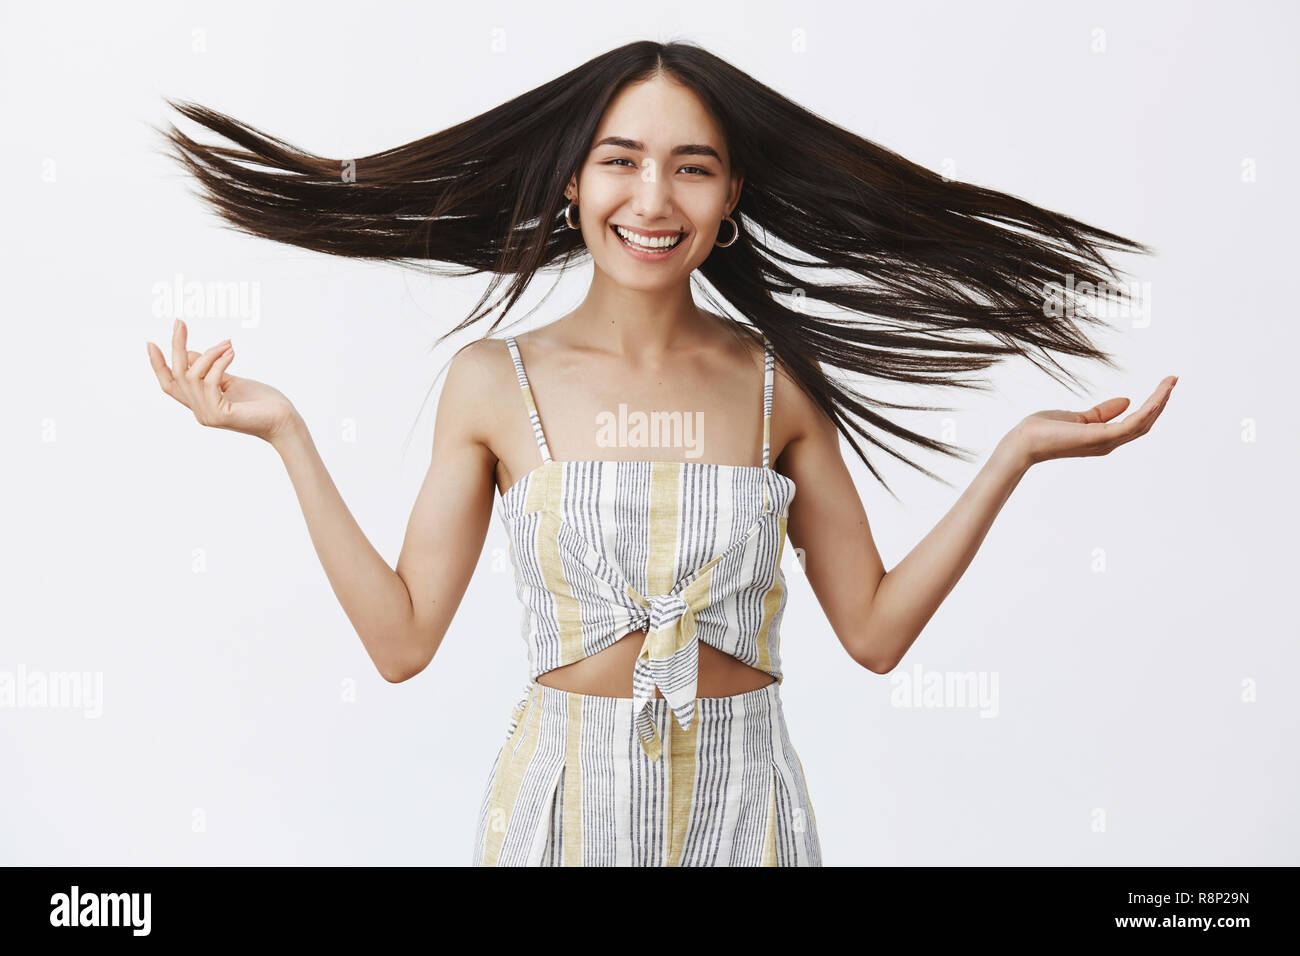 After Haircut Stock Photos Amp After Haircut Stock Images